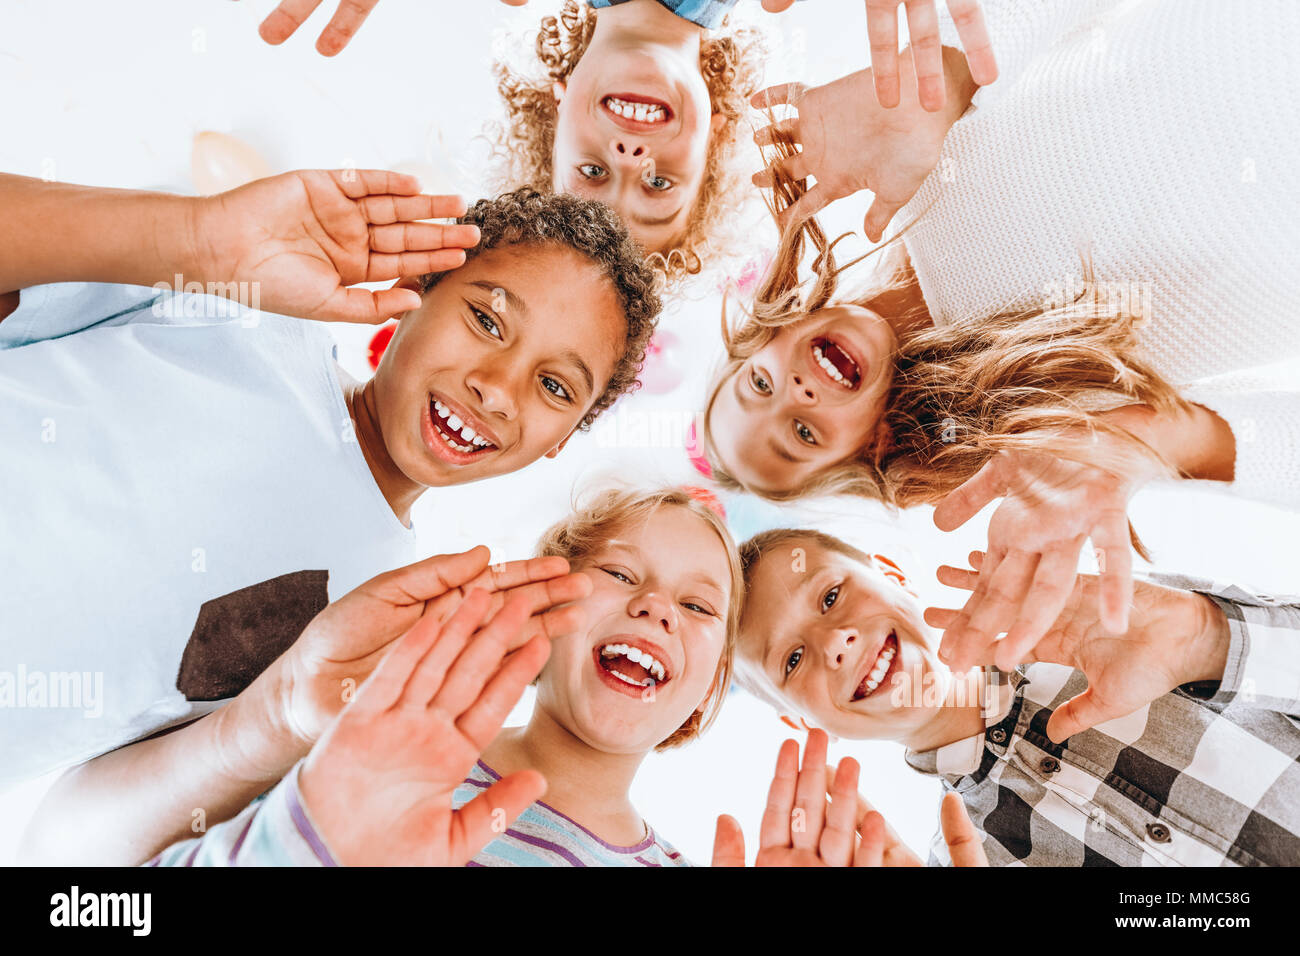 Group of happy children waving at the camera - Stock Image